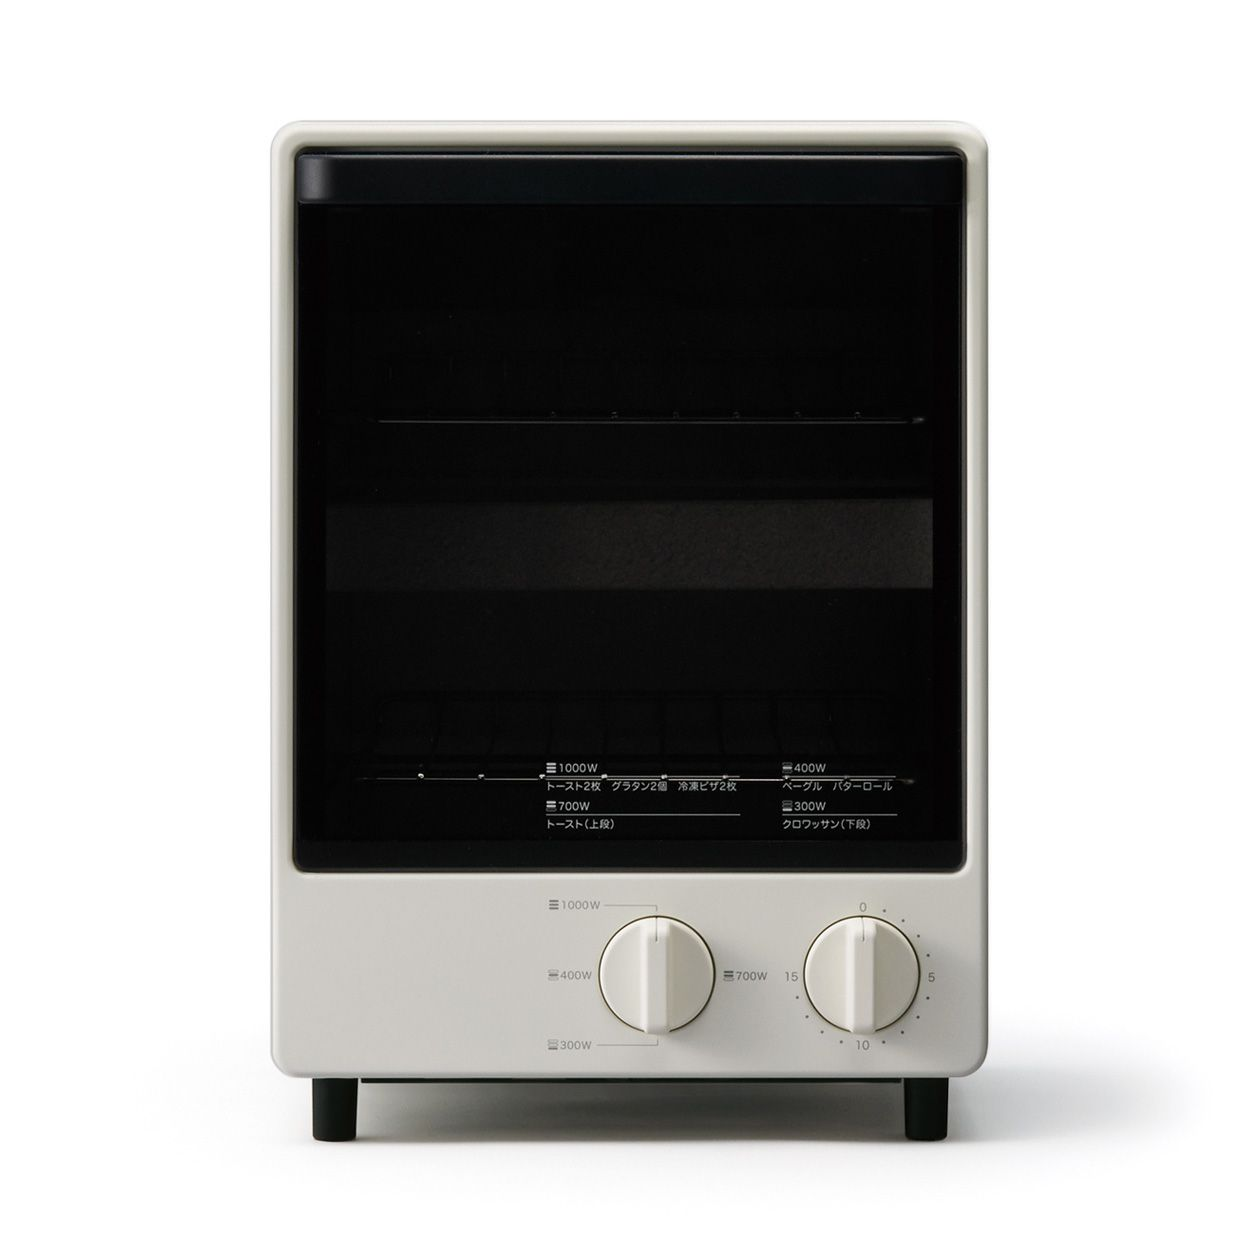 Details about MUJI Toaster oven vertical mold Japan Moma From Japan